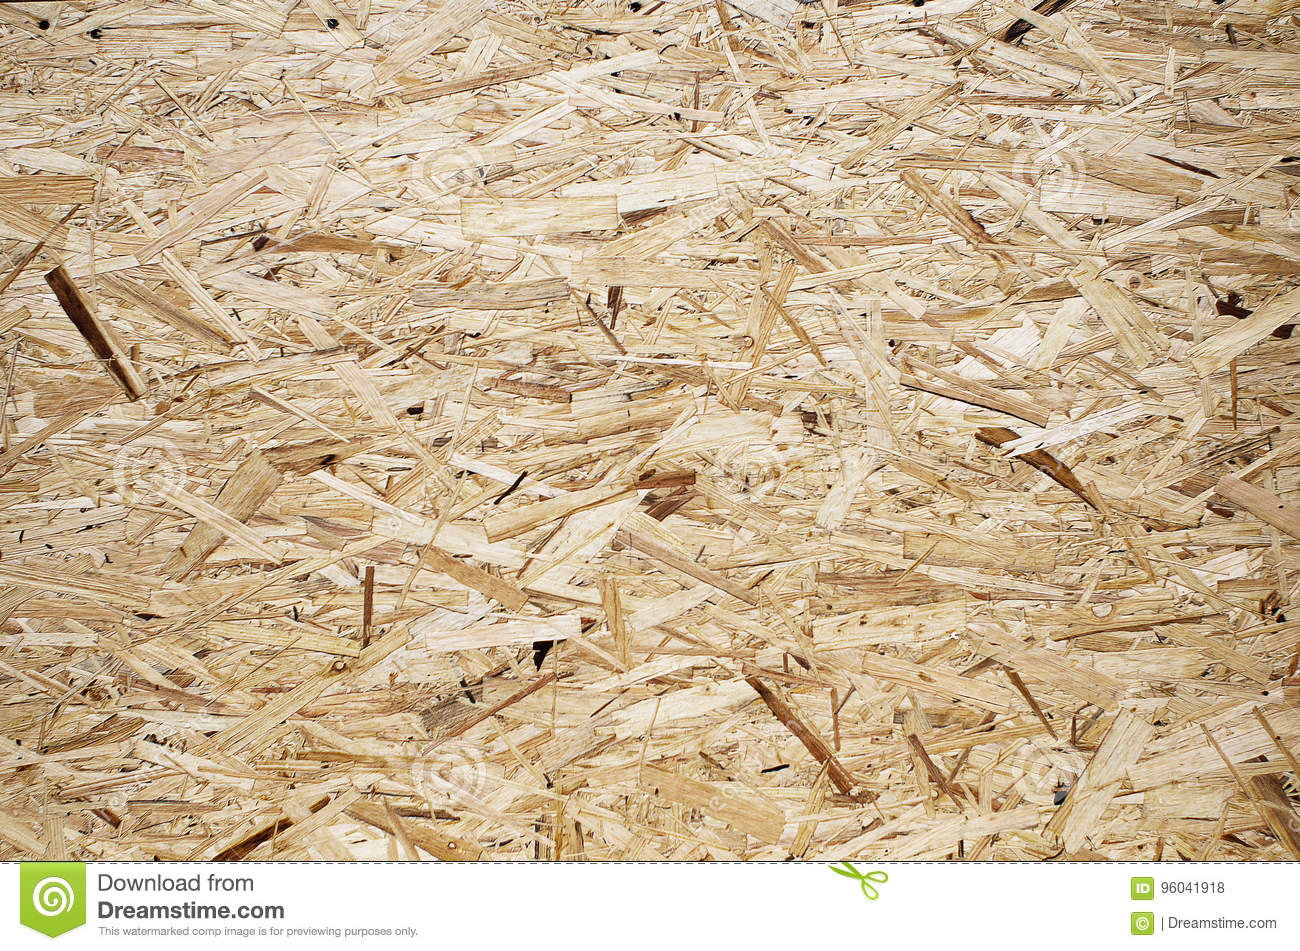 Material From Compressed Wood Shavings  Stock Photo - Image